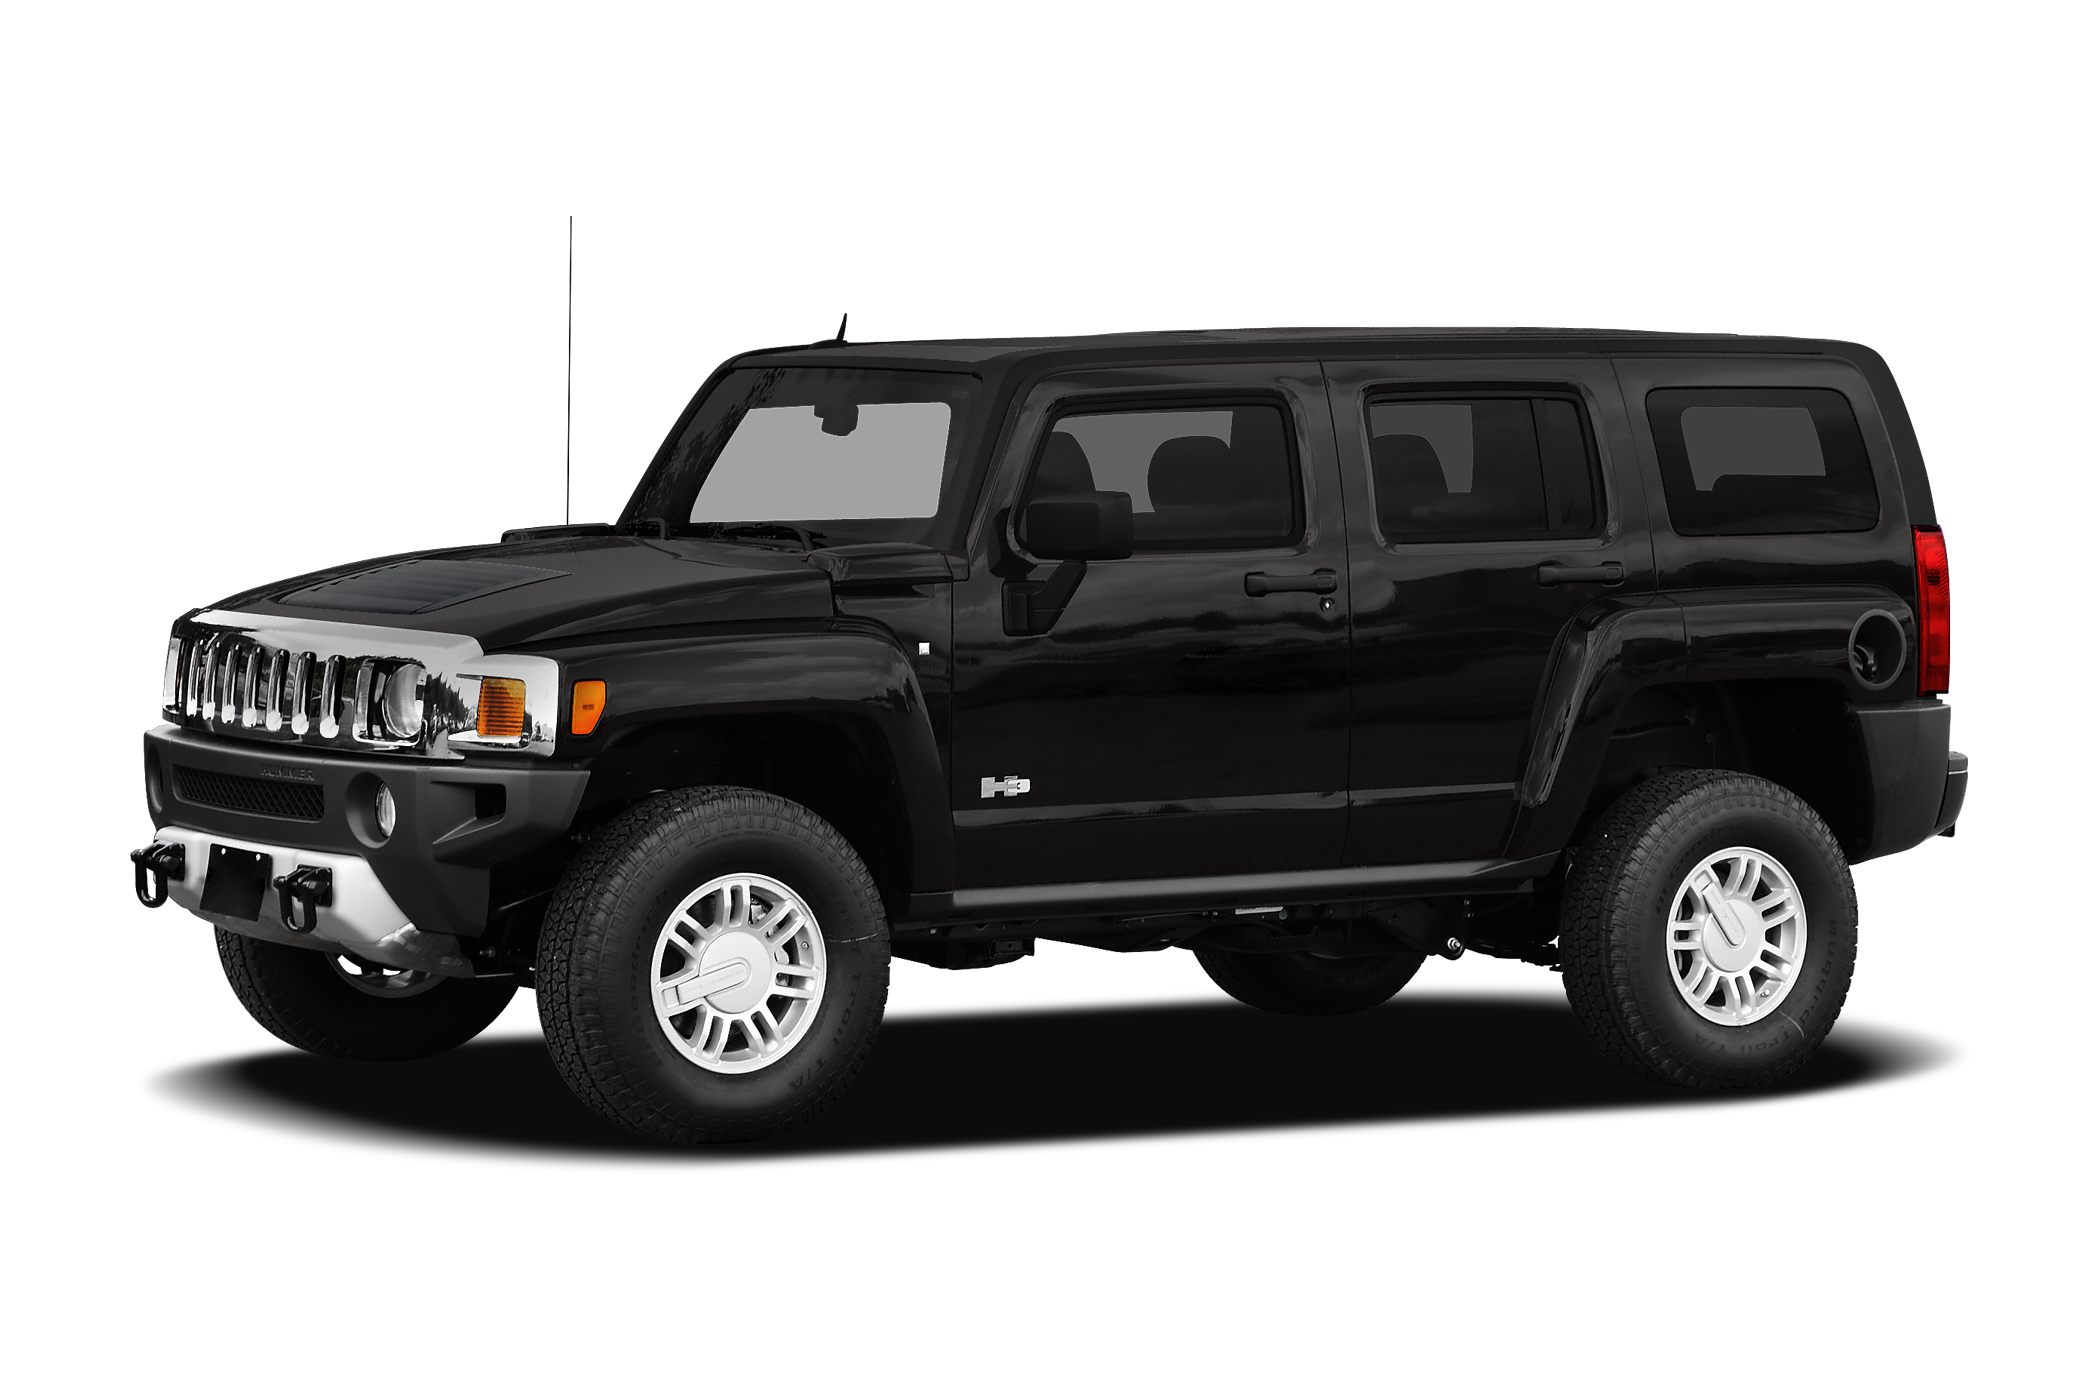 2009 Hummer H3 SUV for sale in Springfield for $19,990 with 110,308 miles